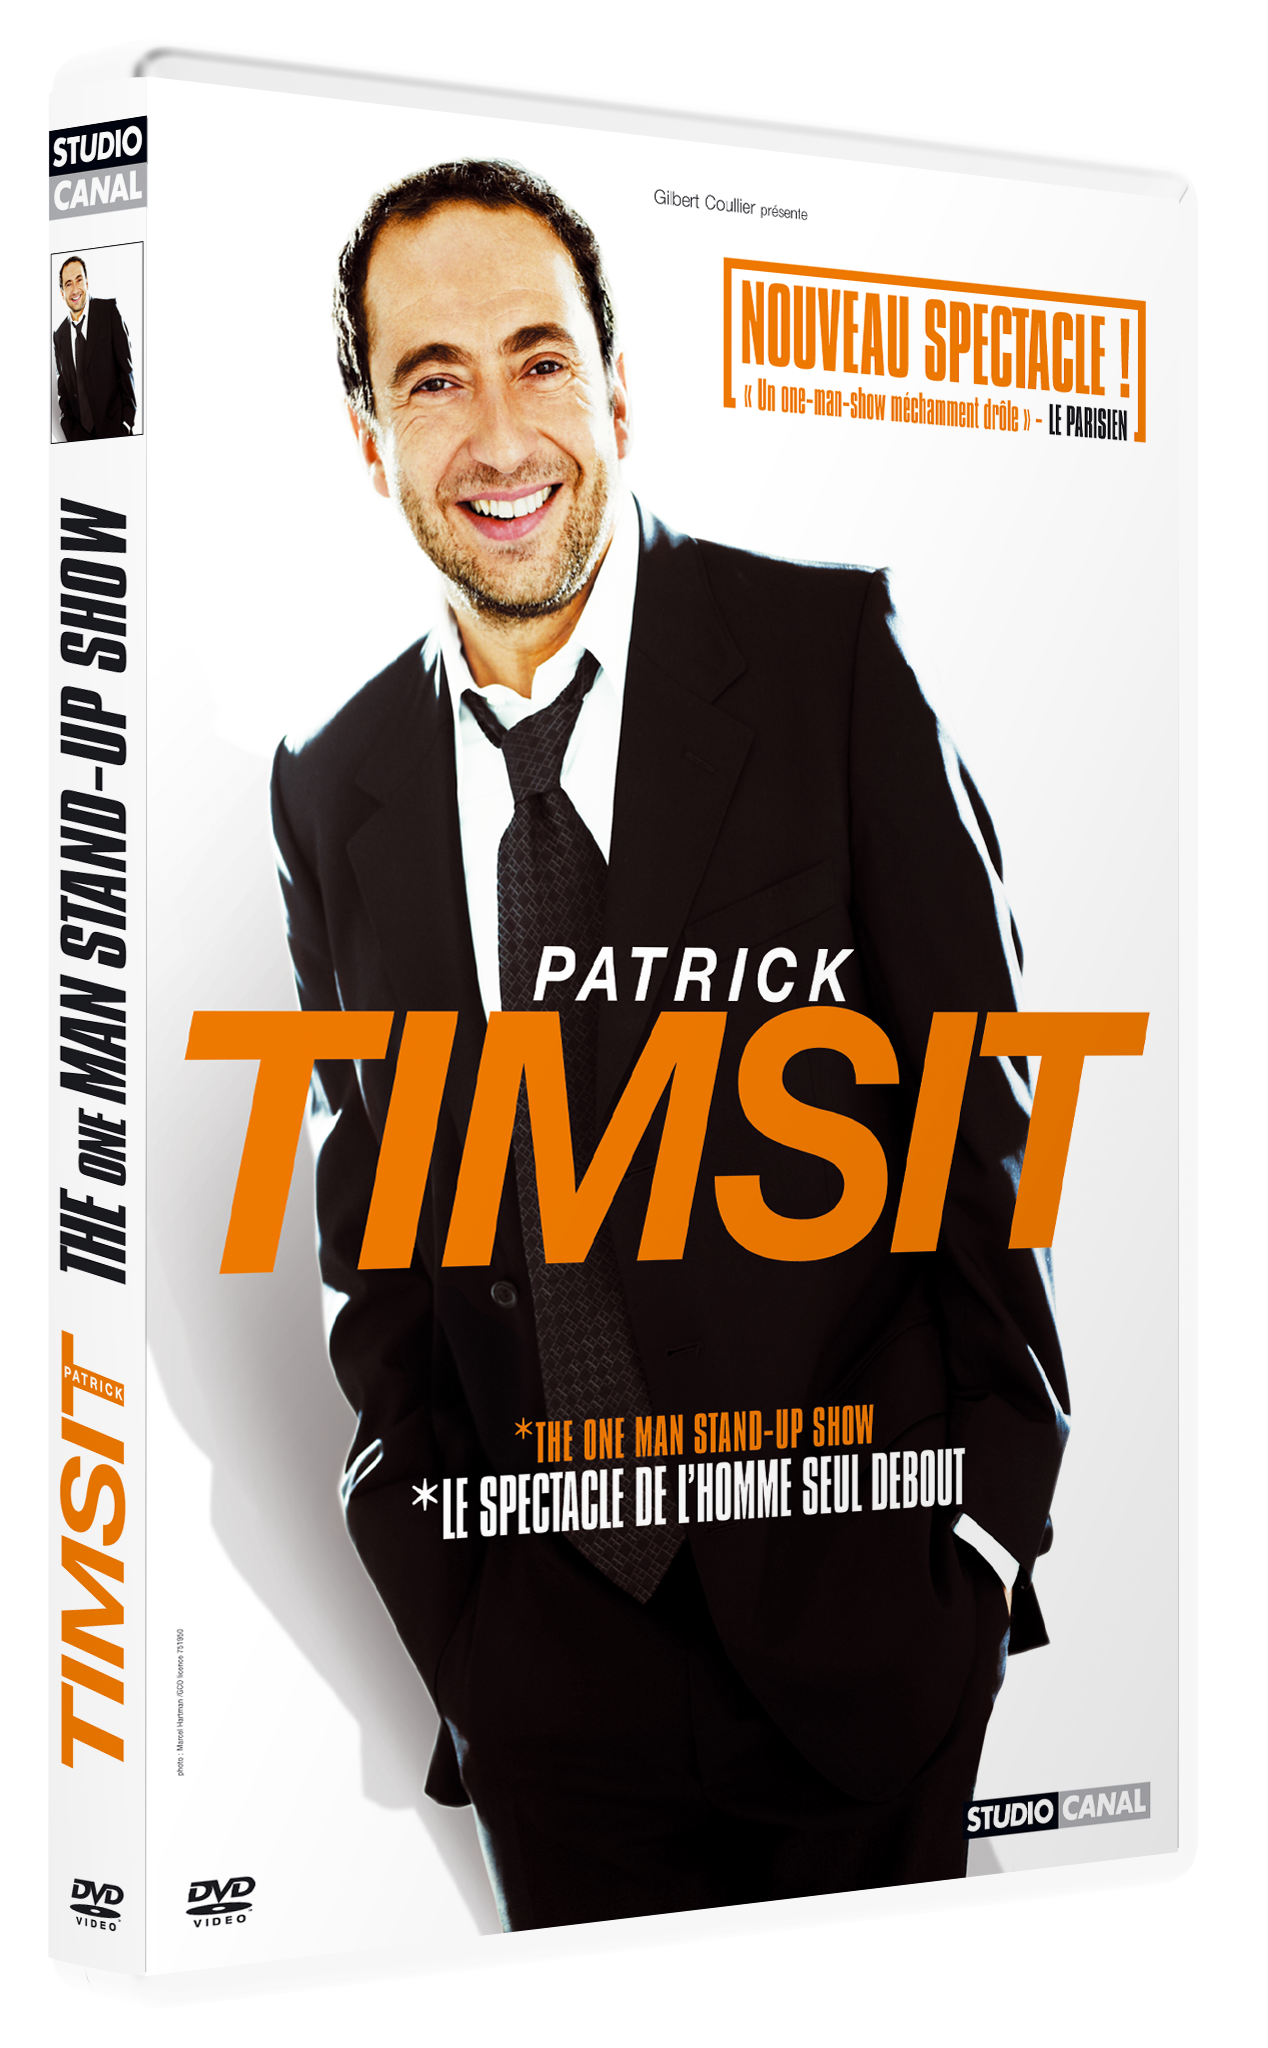 DVD spectacle Patrick Timsit